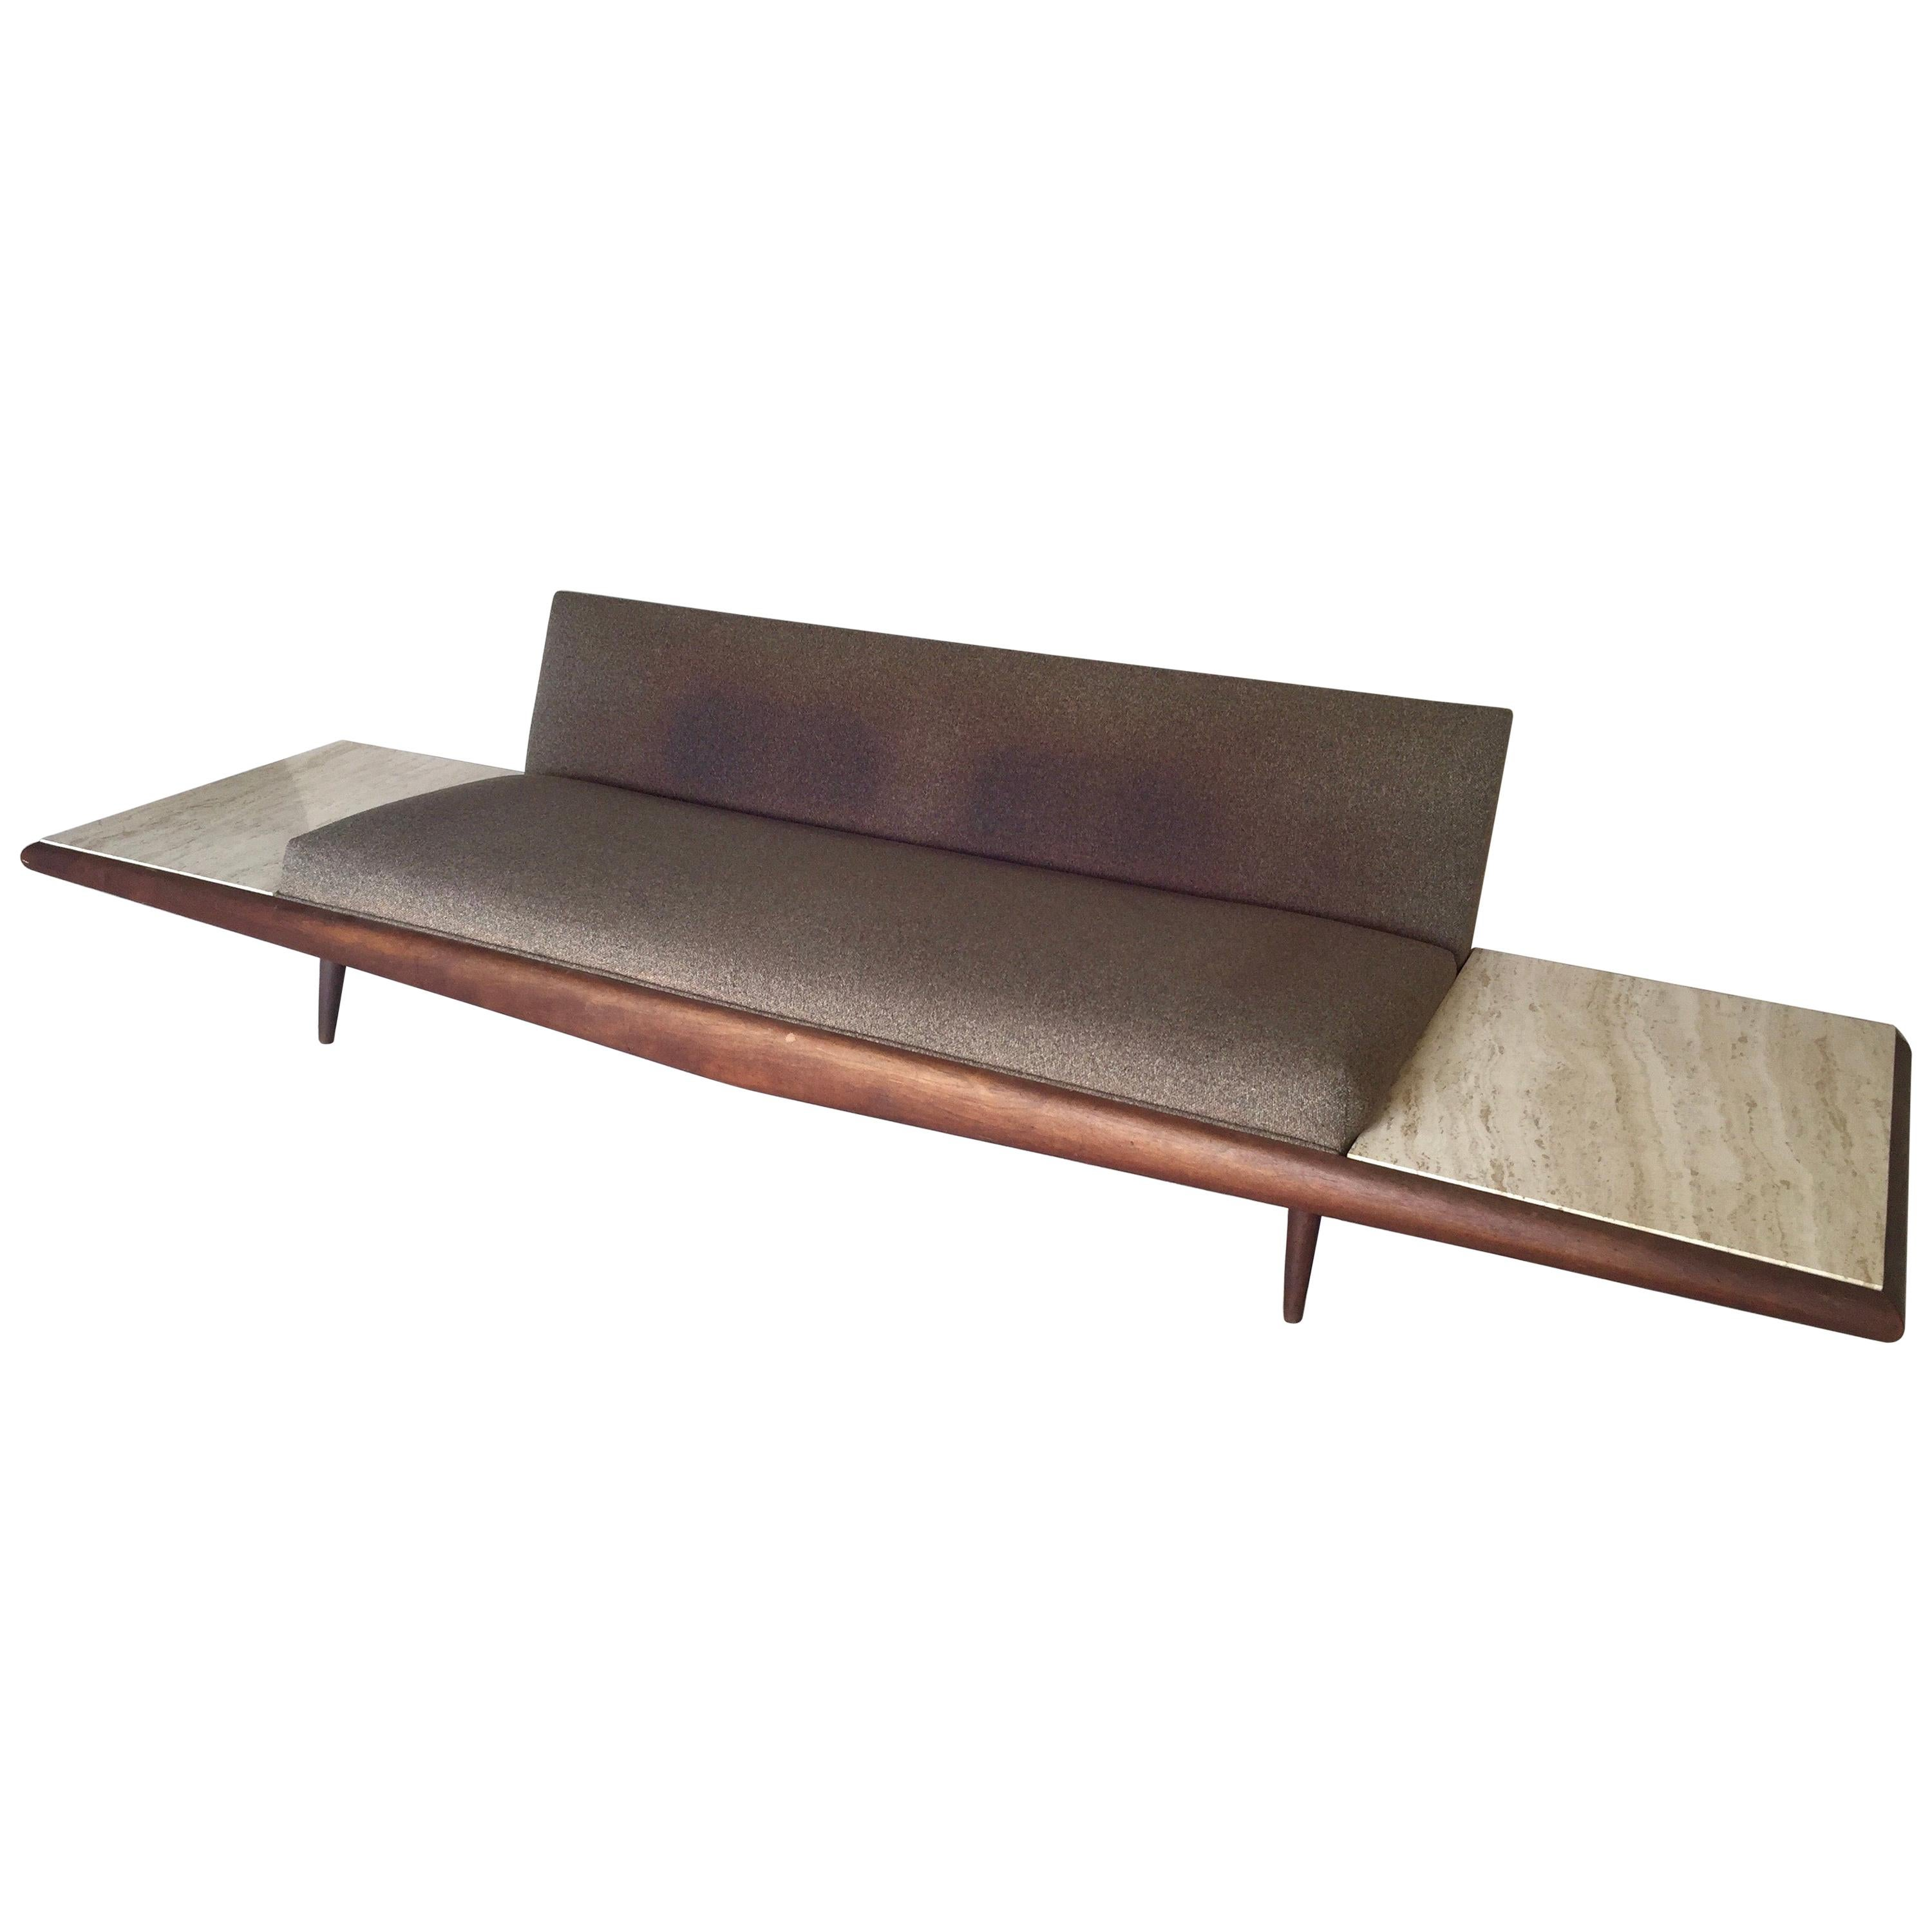 Adrian Pearsall Craft Associates X-Long Brown Sofa with Marble End Tables 889-S